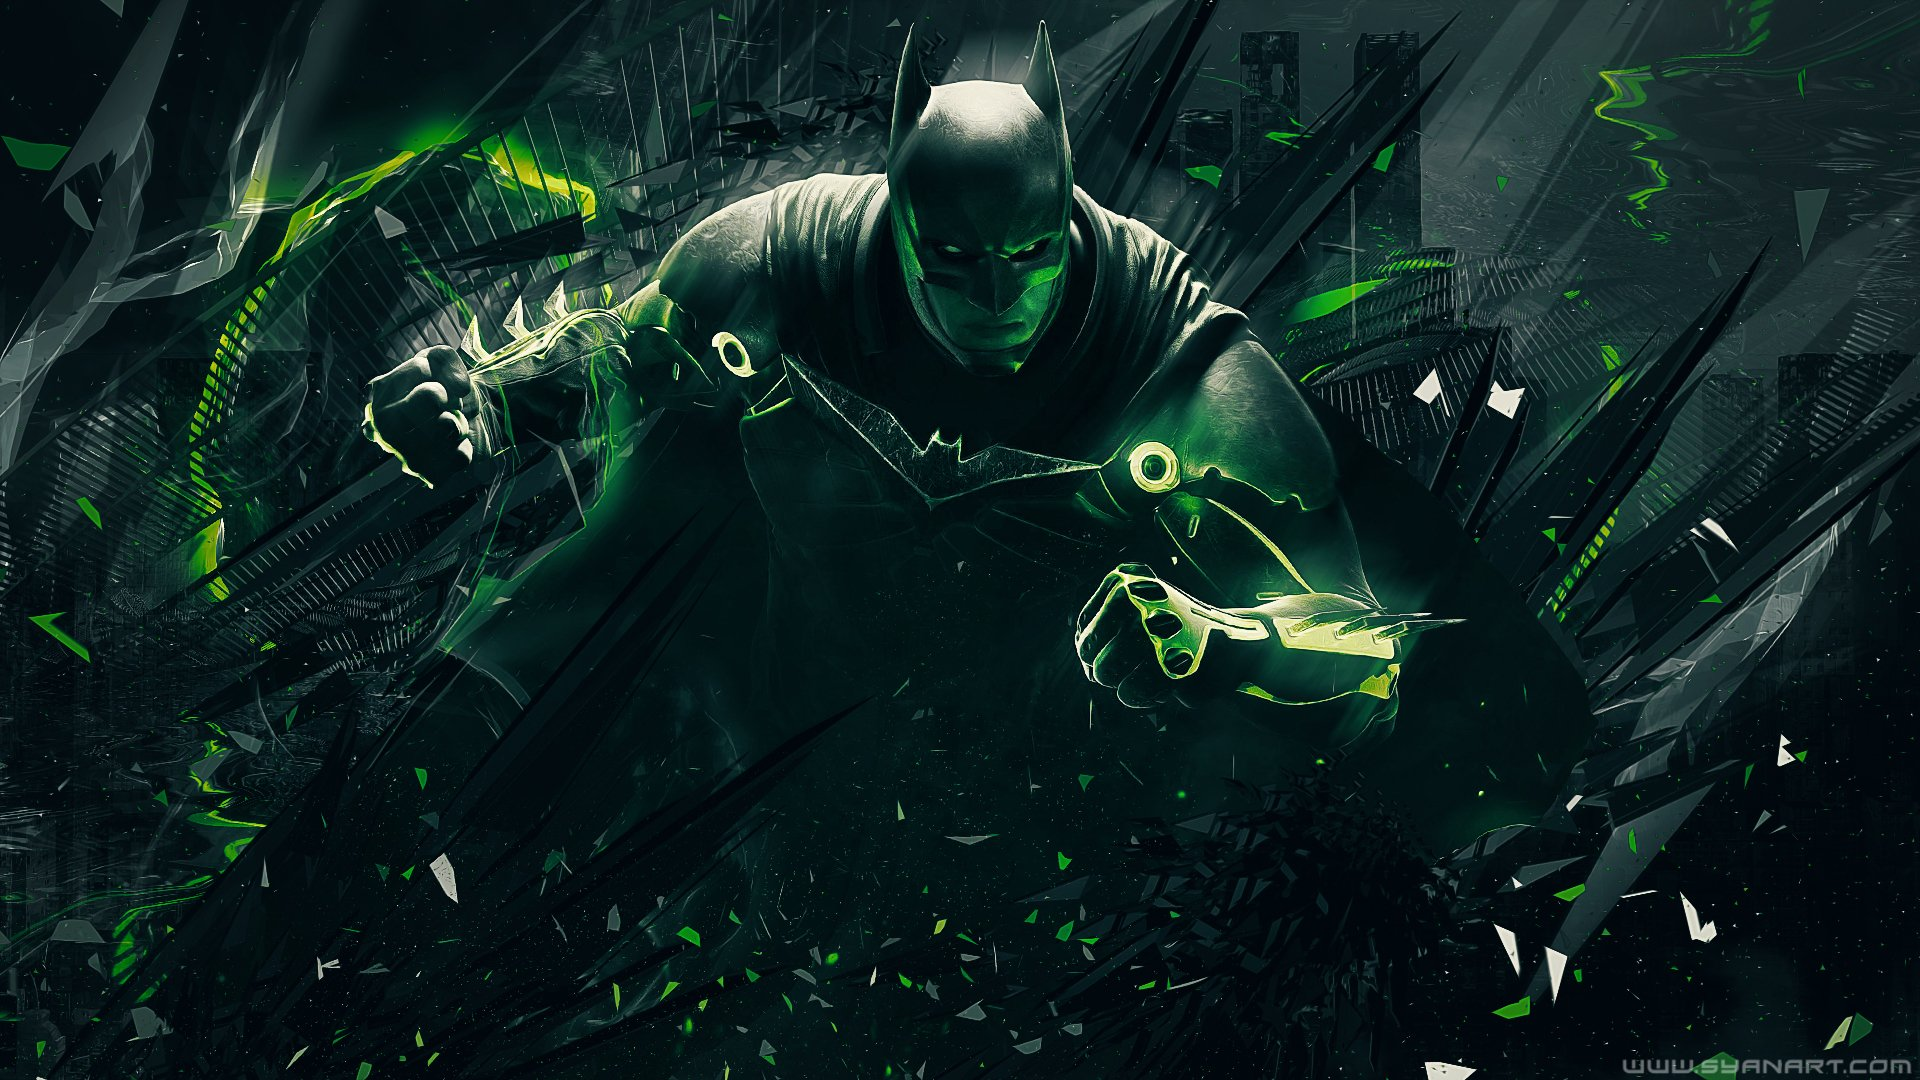 Free Download 71 Injustice 2 Hd Wallpapers Background Images